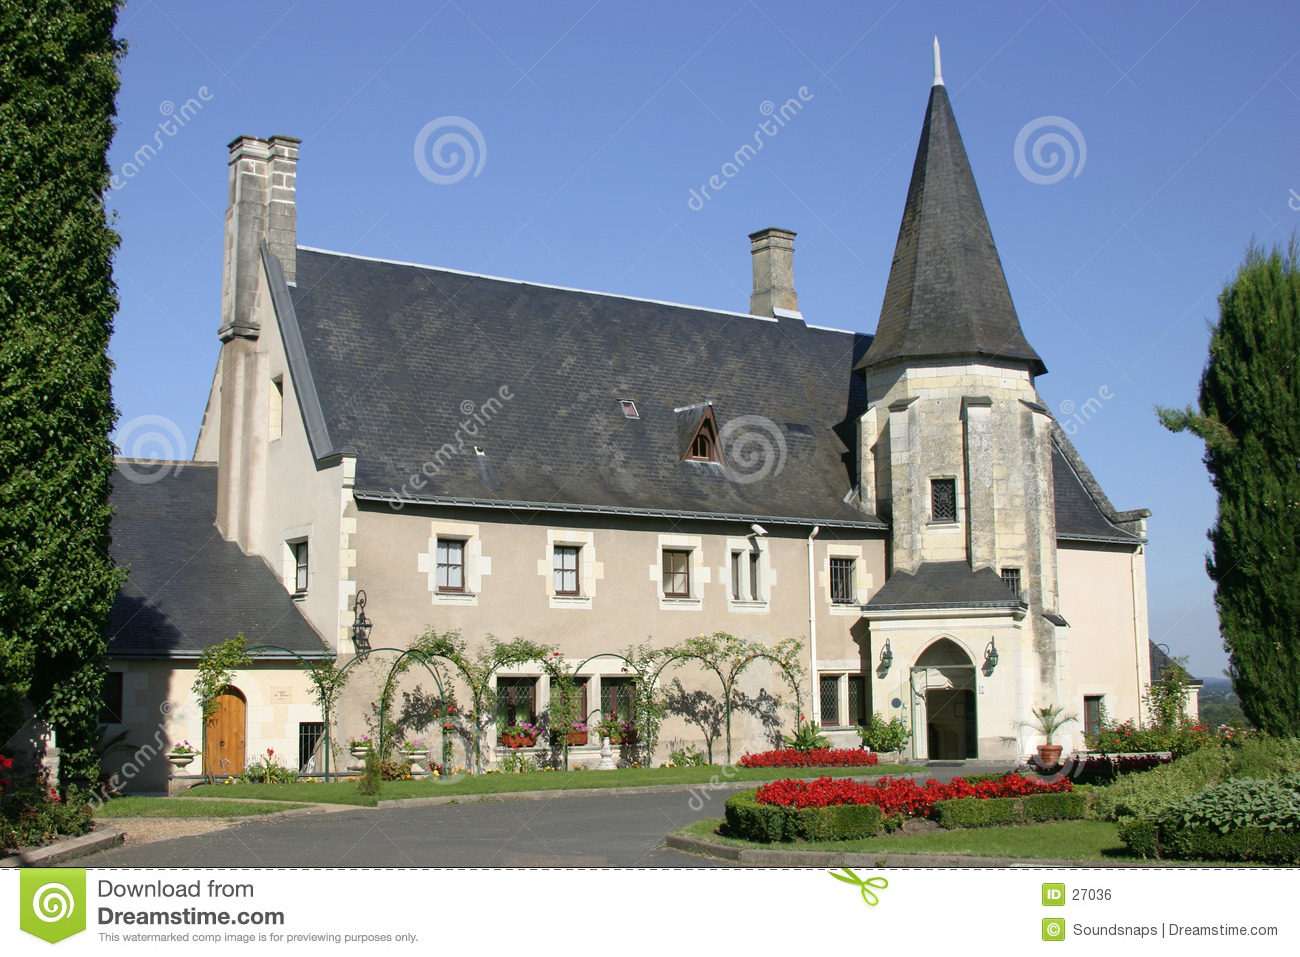 Chateau in the Loire